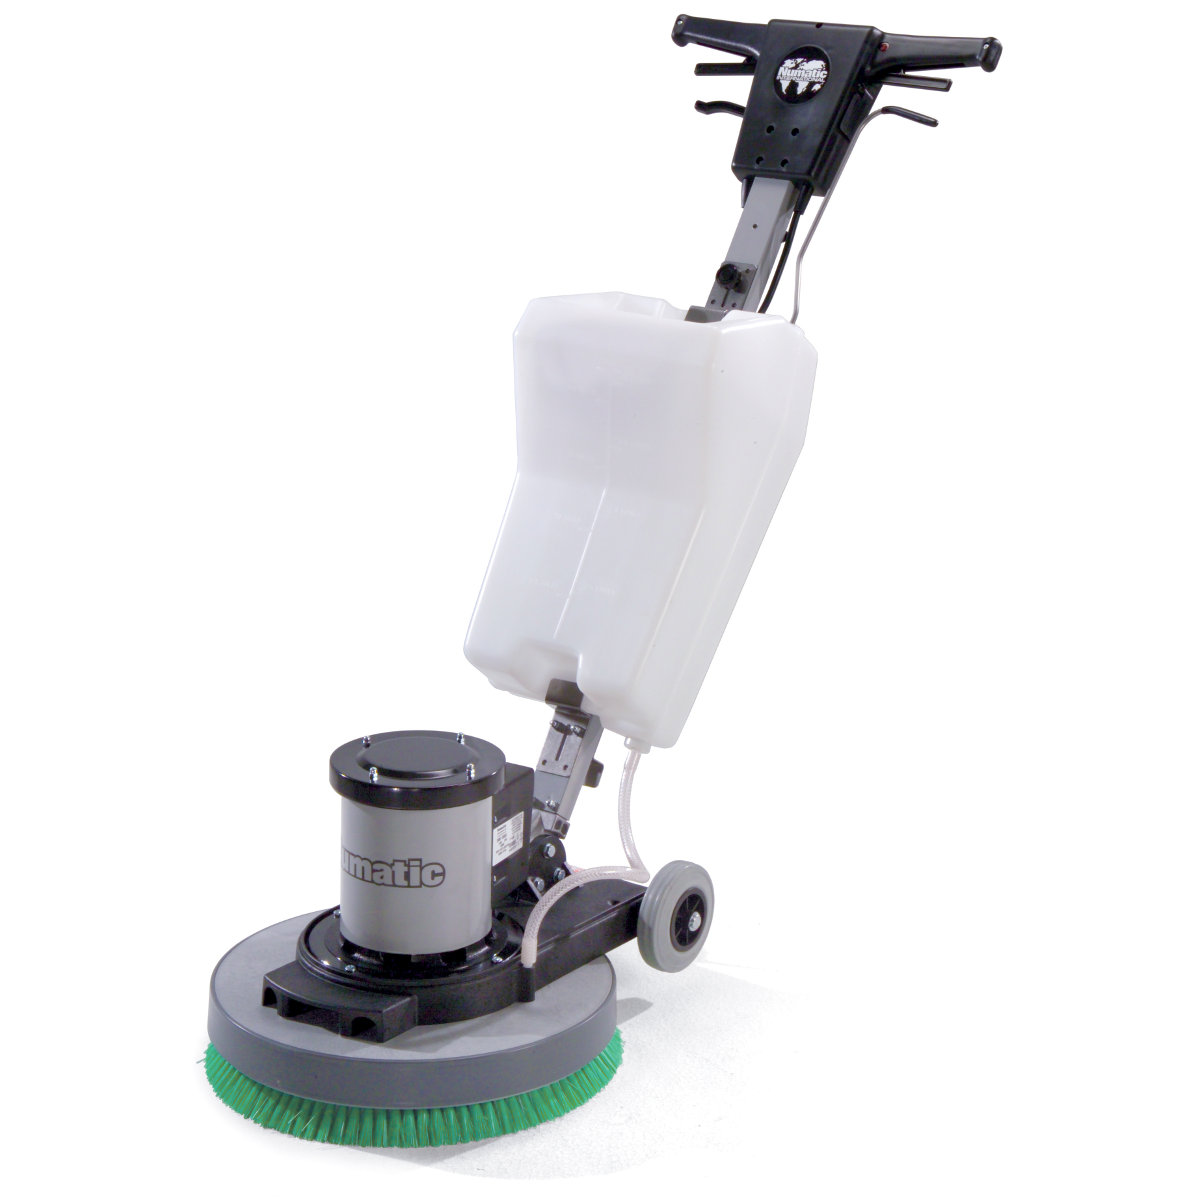 Floor scrubber floor polisher wellers hire for Floor scrubber